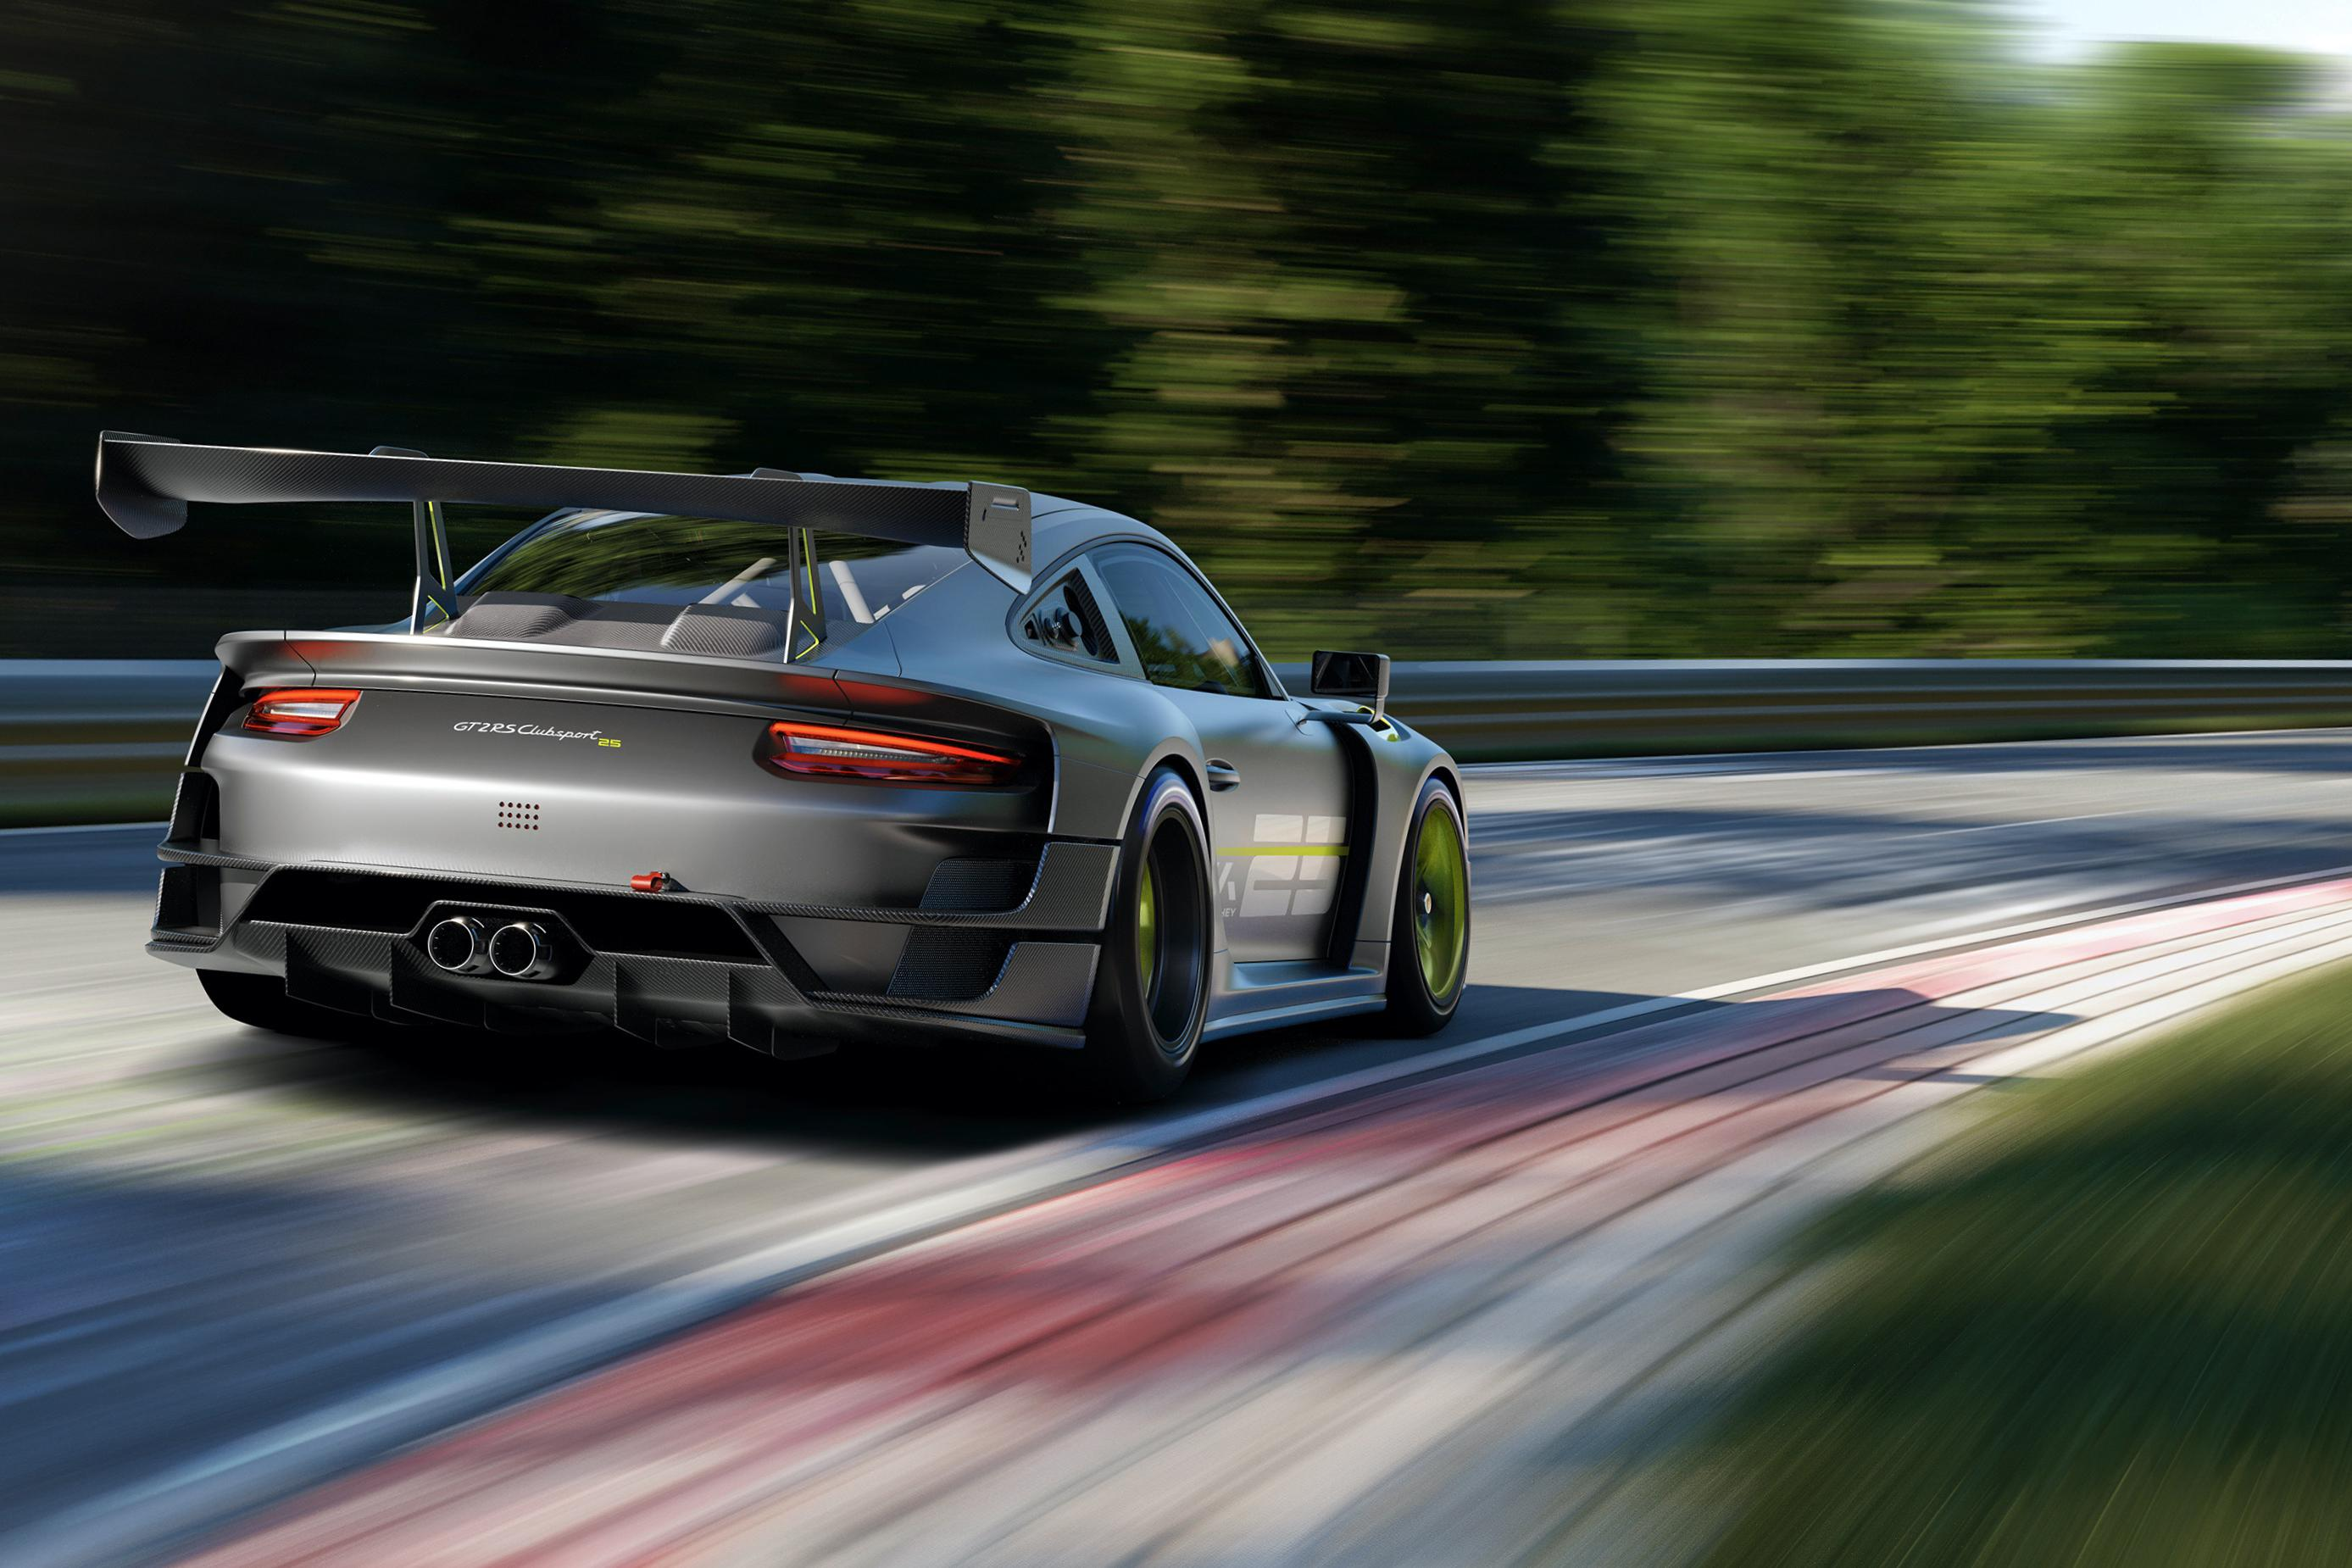 Porsche 911 GT2 RS Clubsport 25 celebrates 25 years of Manthey-Racing